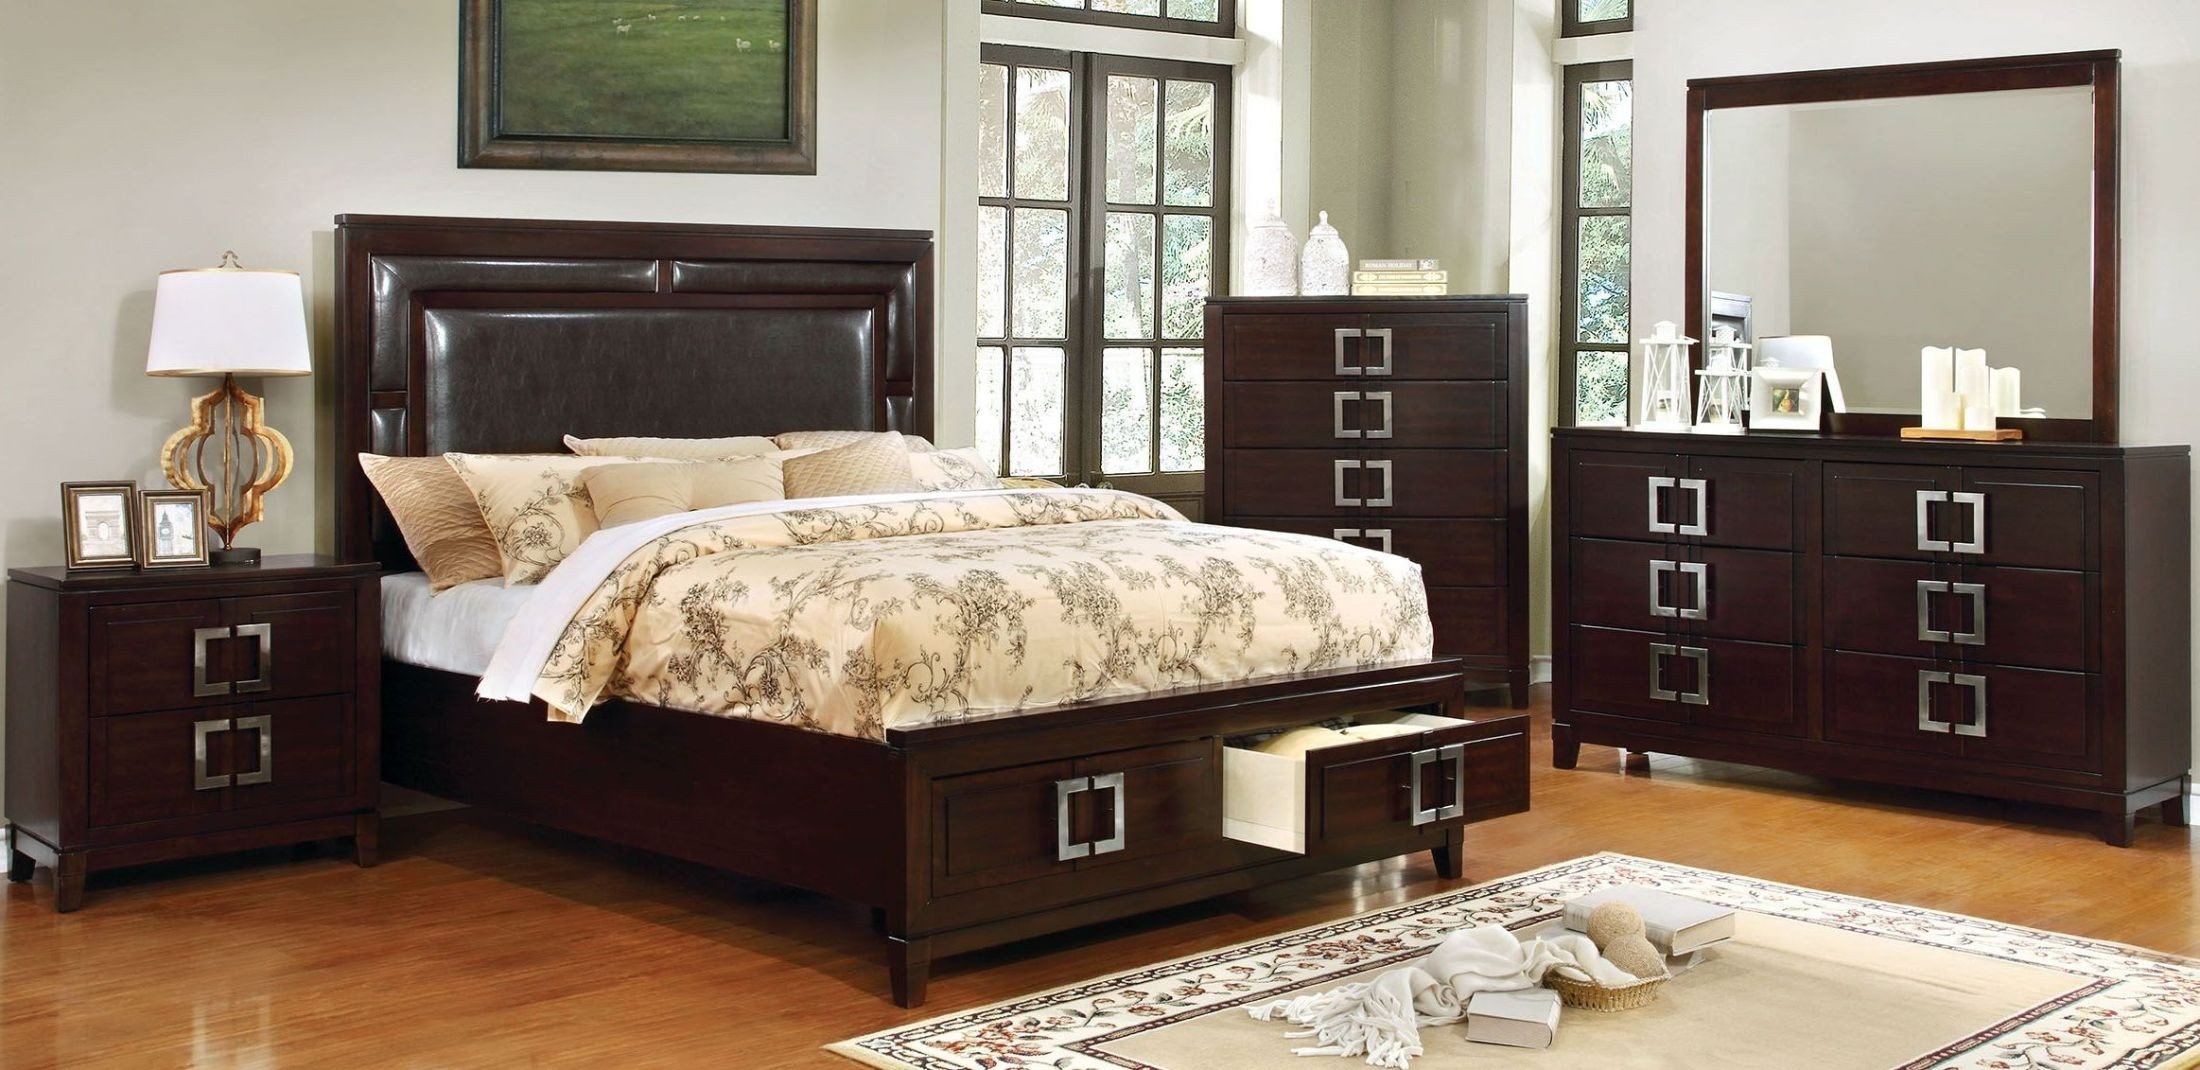 Balfour brown cherry panel storage bedroom set - Bedroom furniture sets buy now pay later ...